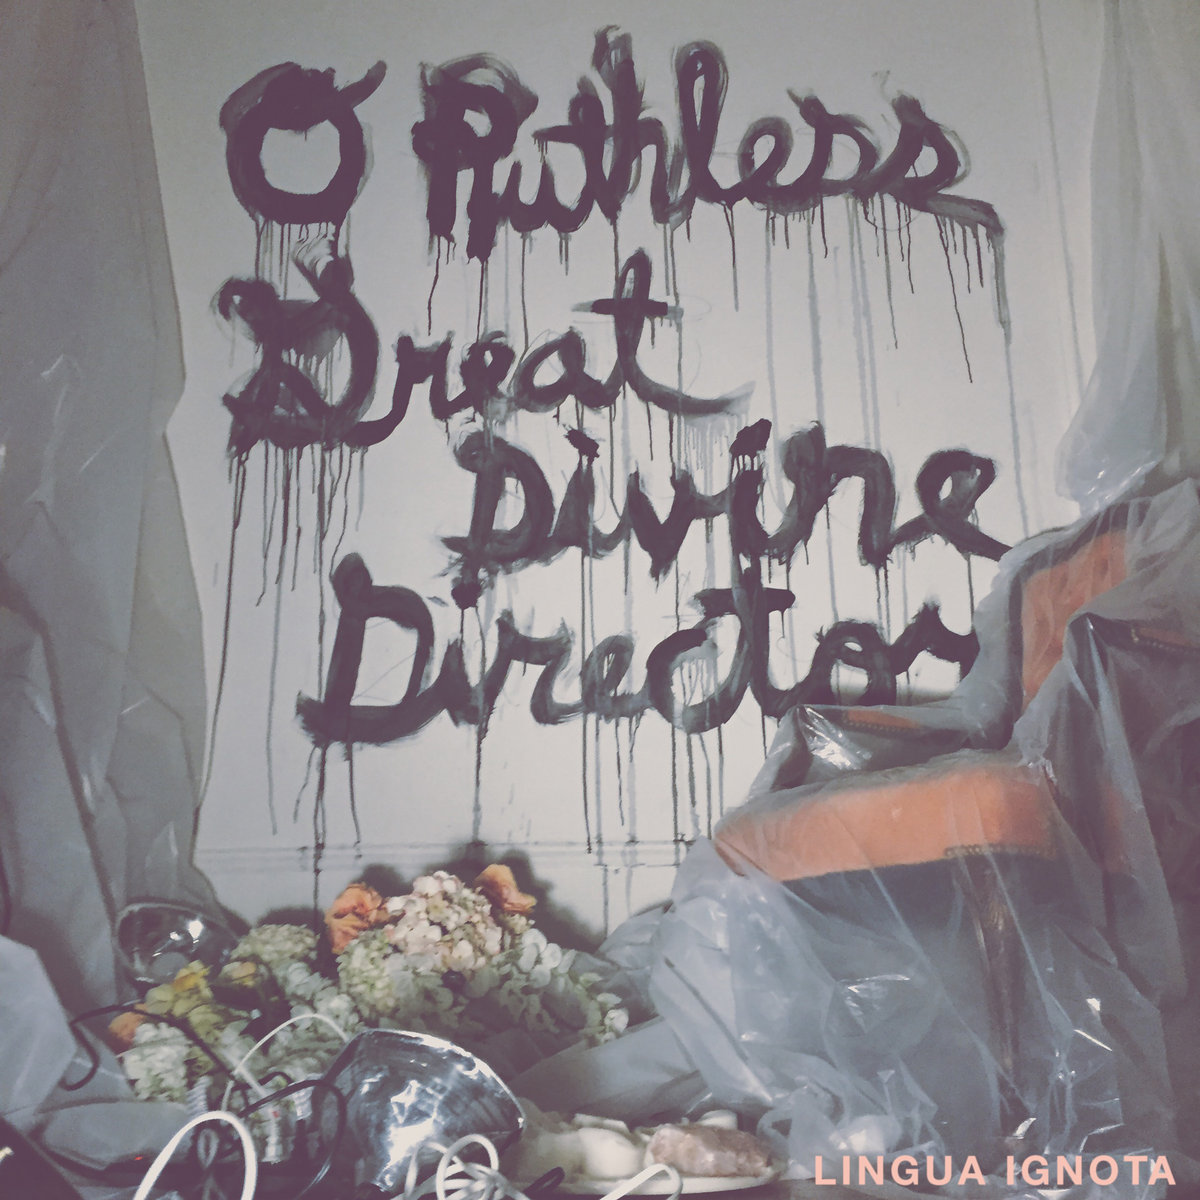 O Ruthless Great Divine Director by LINGUA IGNOTA